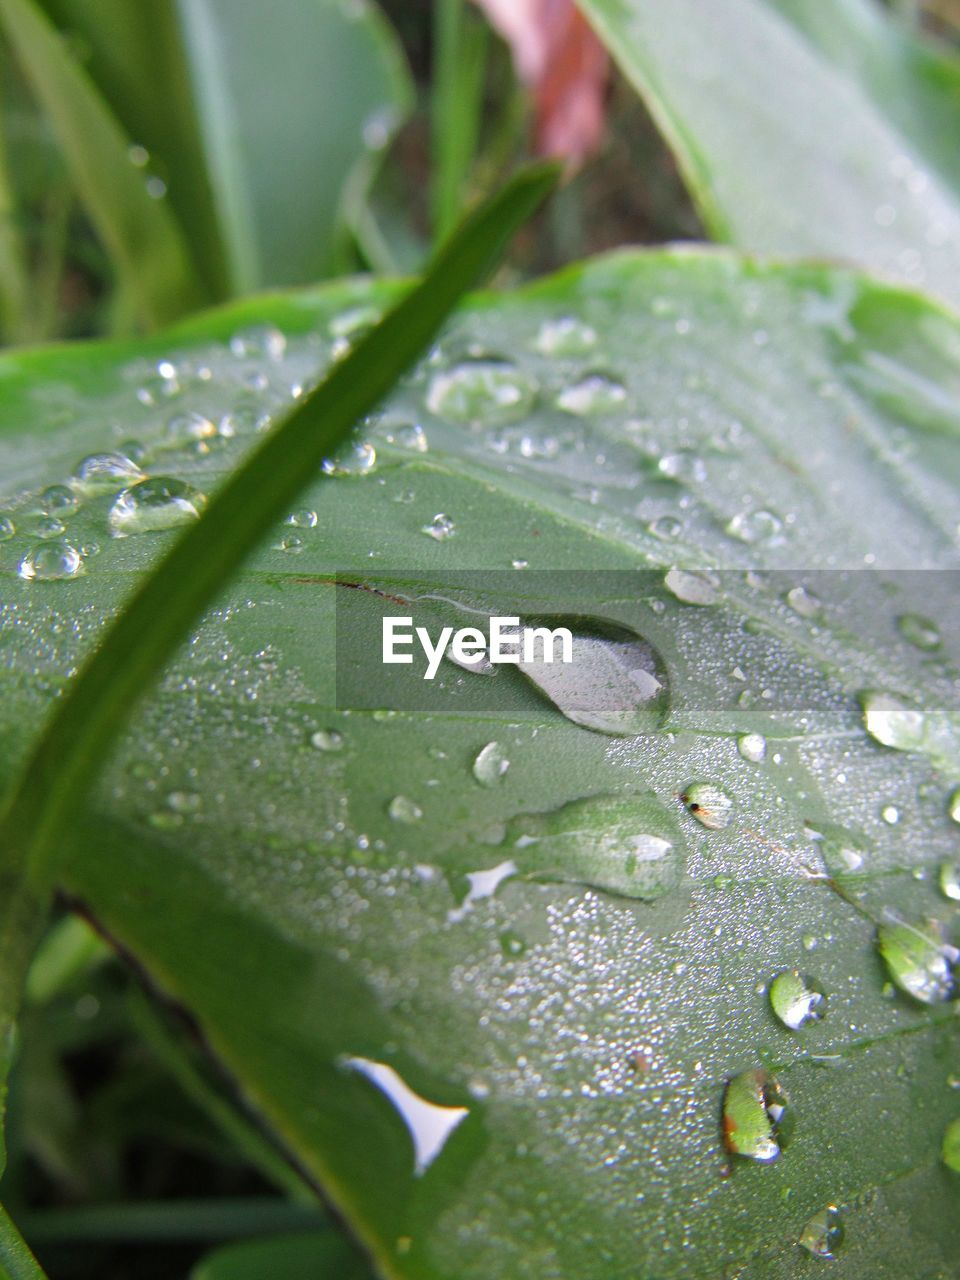 drop, wet, water, close-up, leaf, plant part, plant, growth, green color, nature, beauty in nature, rain, no people, day, selective focus, freshness, raindrop, outdoors, purity, dew, leaves, blade of grass, focus